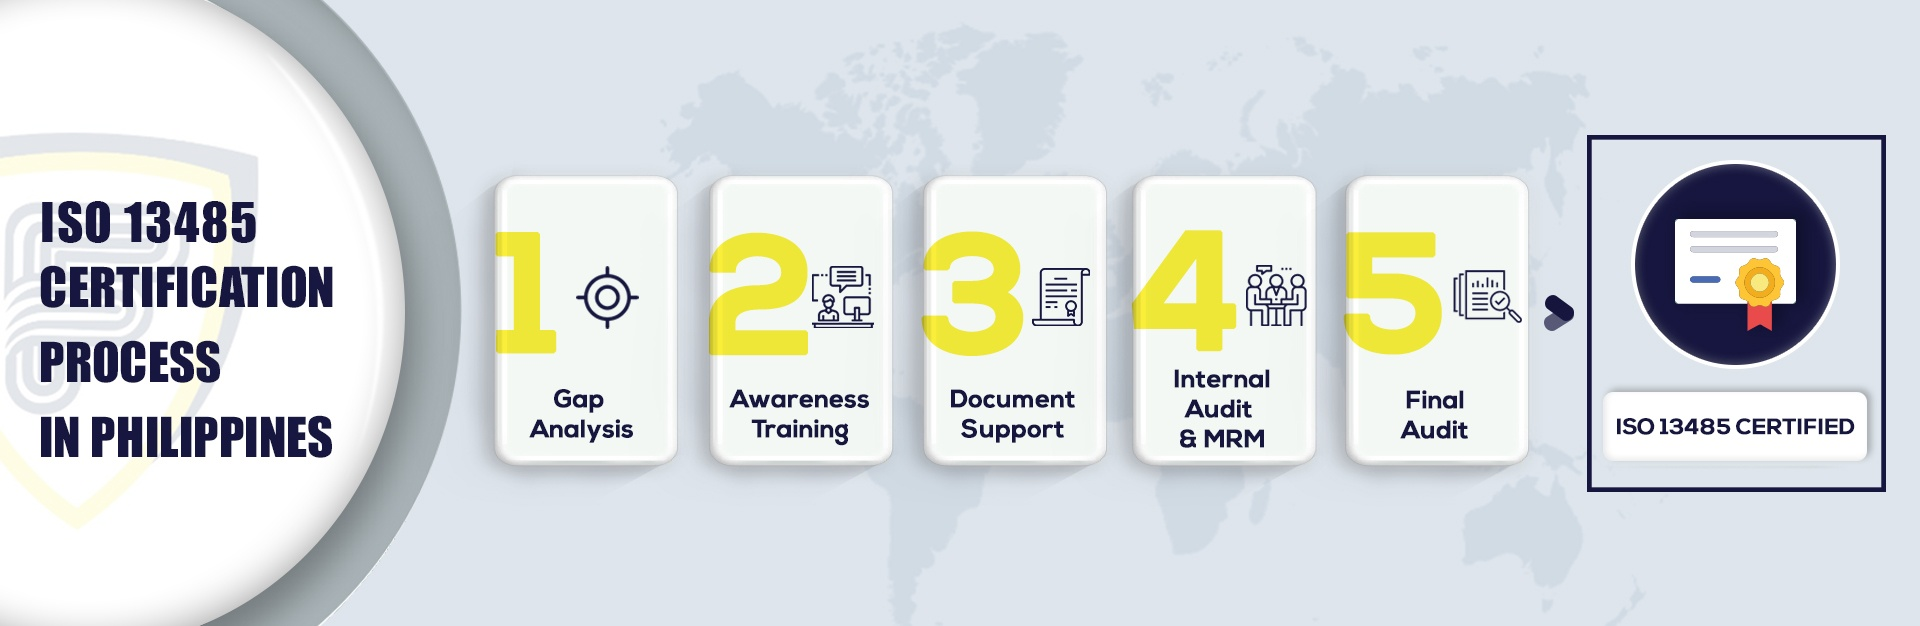 ISO 13485 certification in Philippines